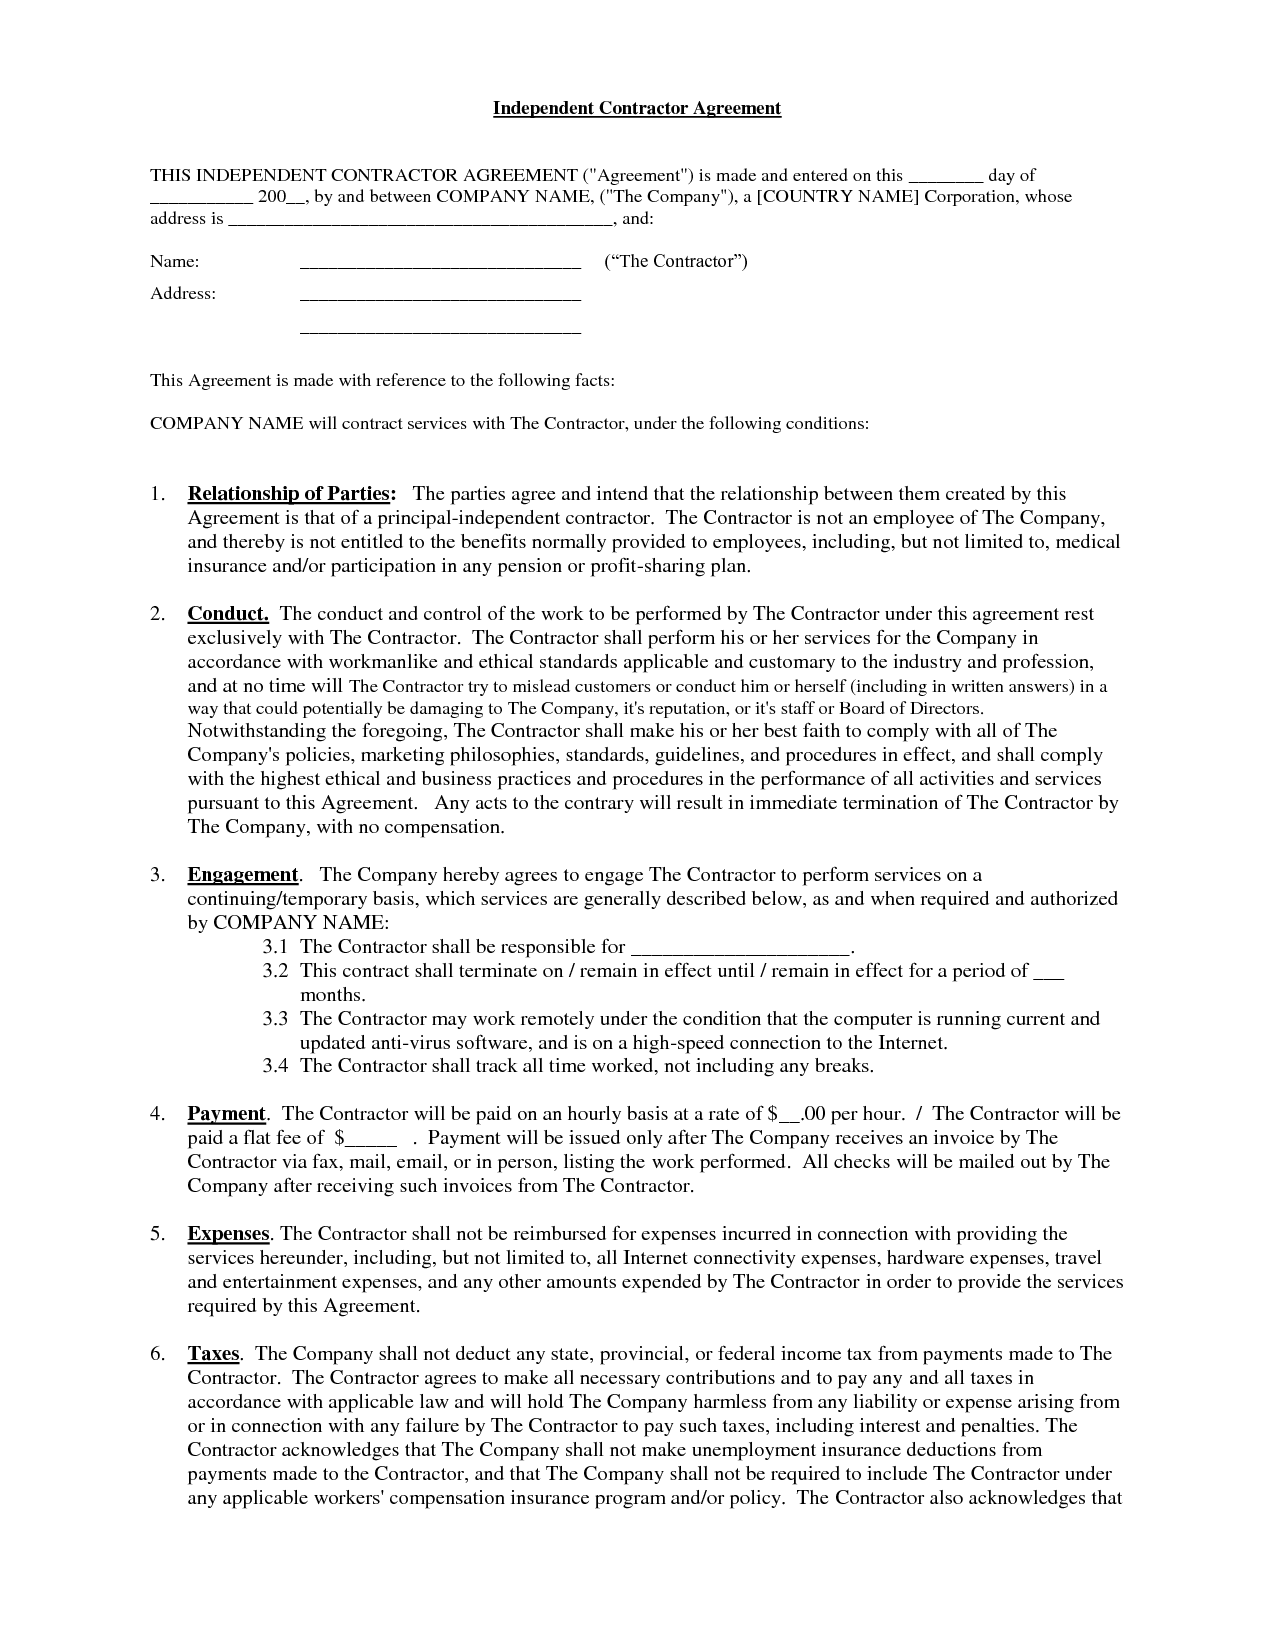 Independent Contractor Contract By BrittanyGibbons Contractor - Company contract sample